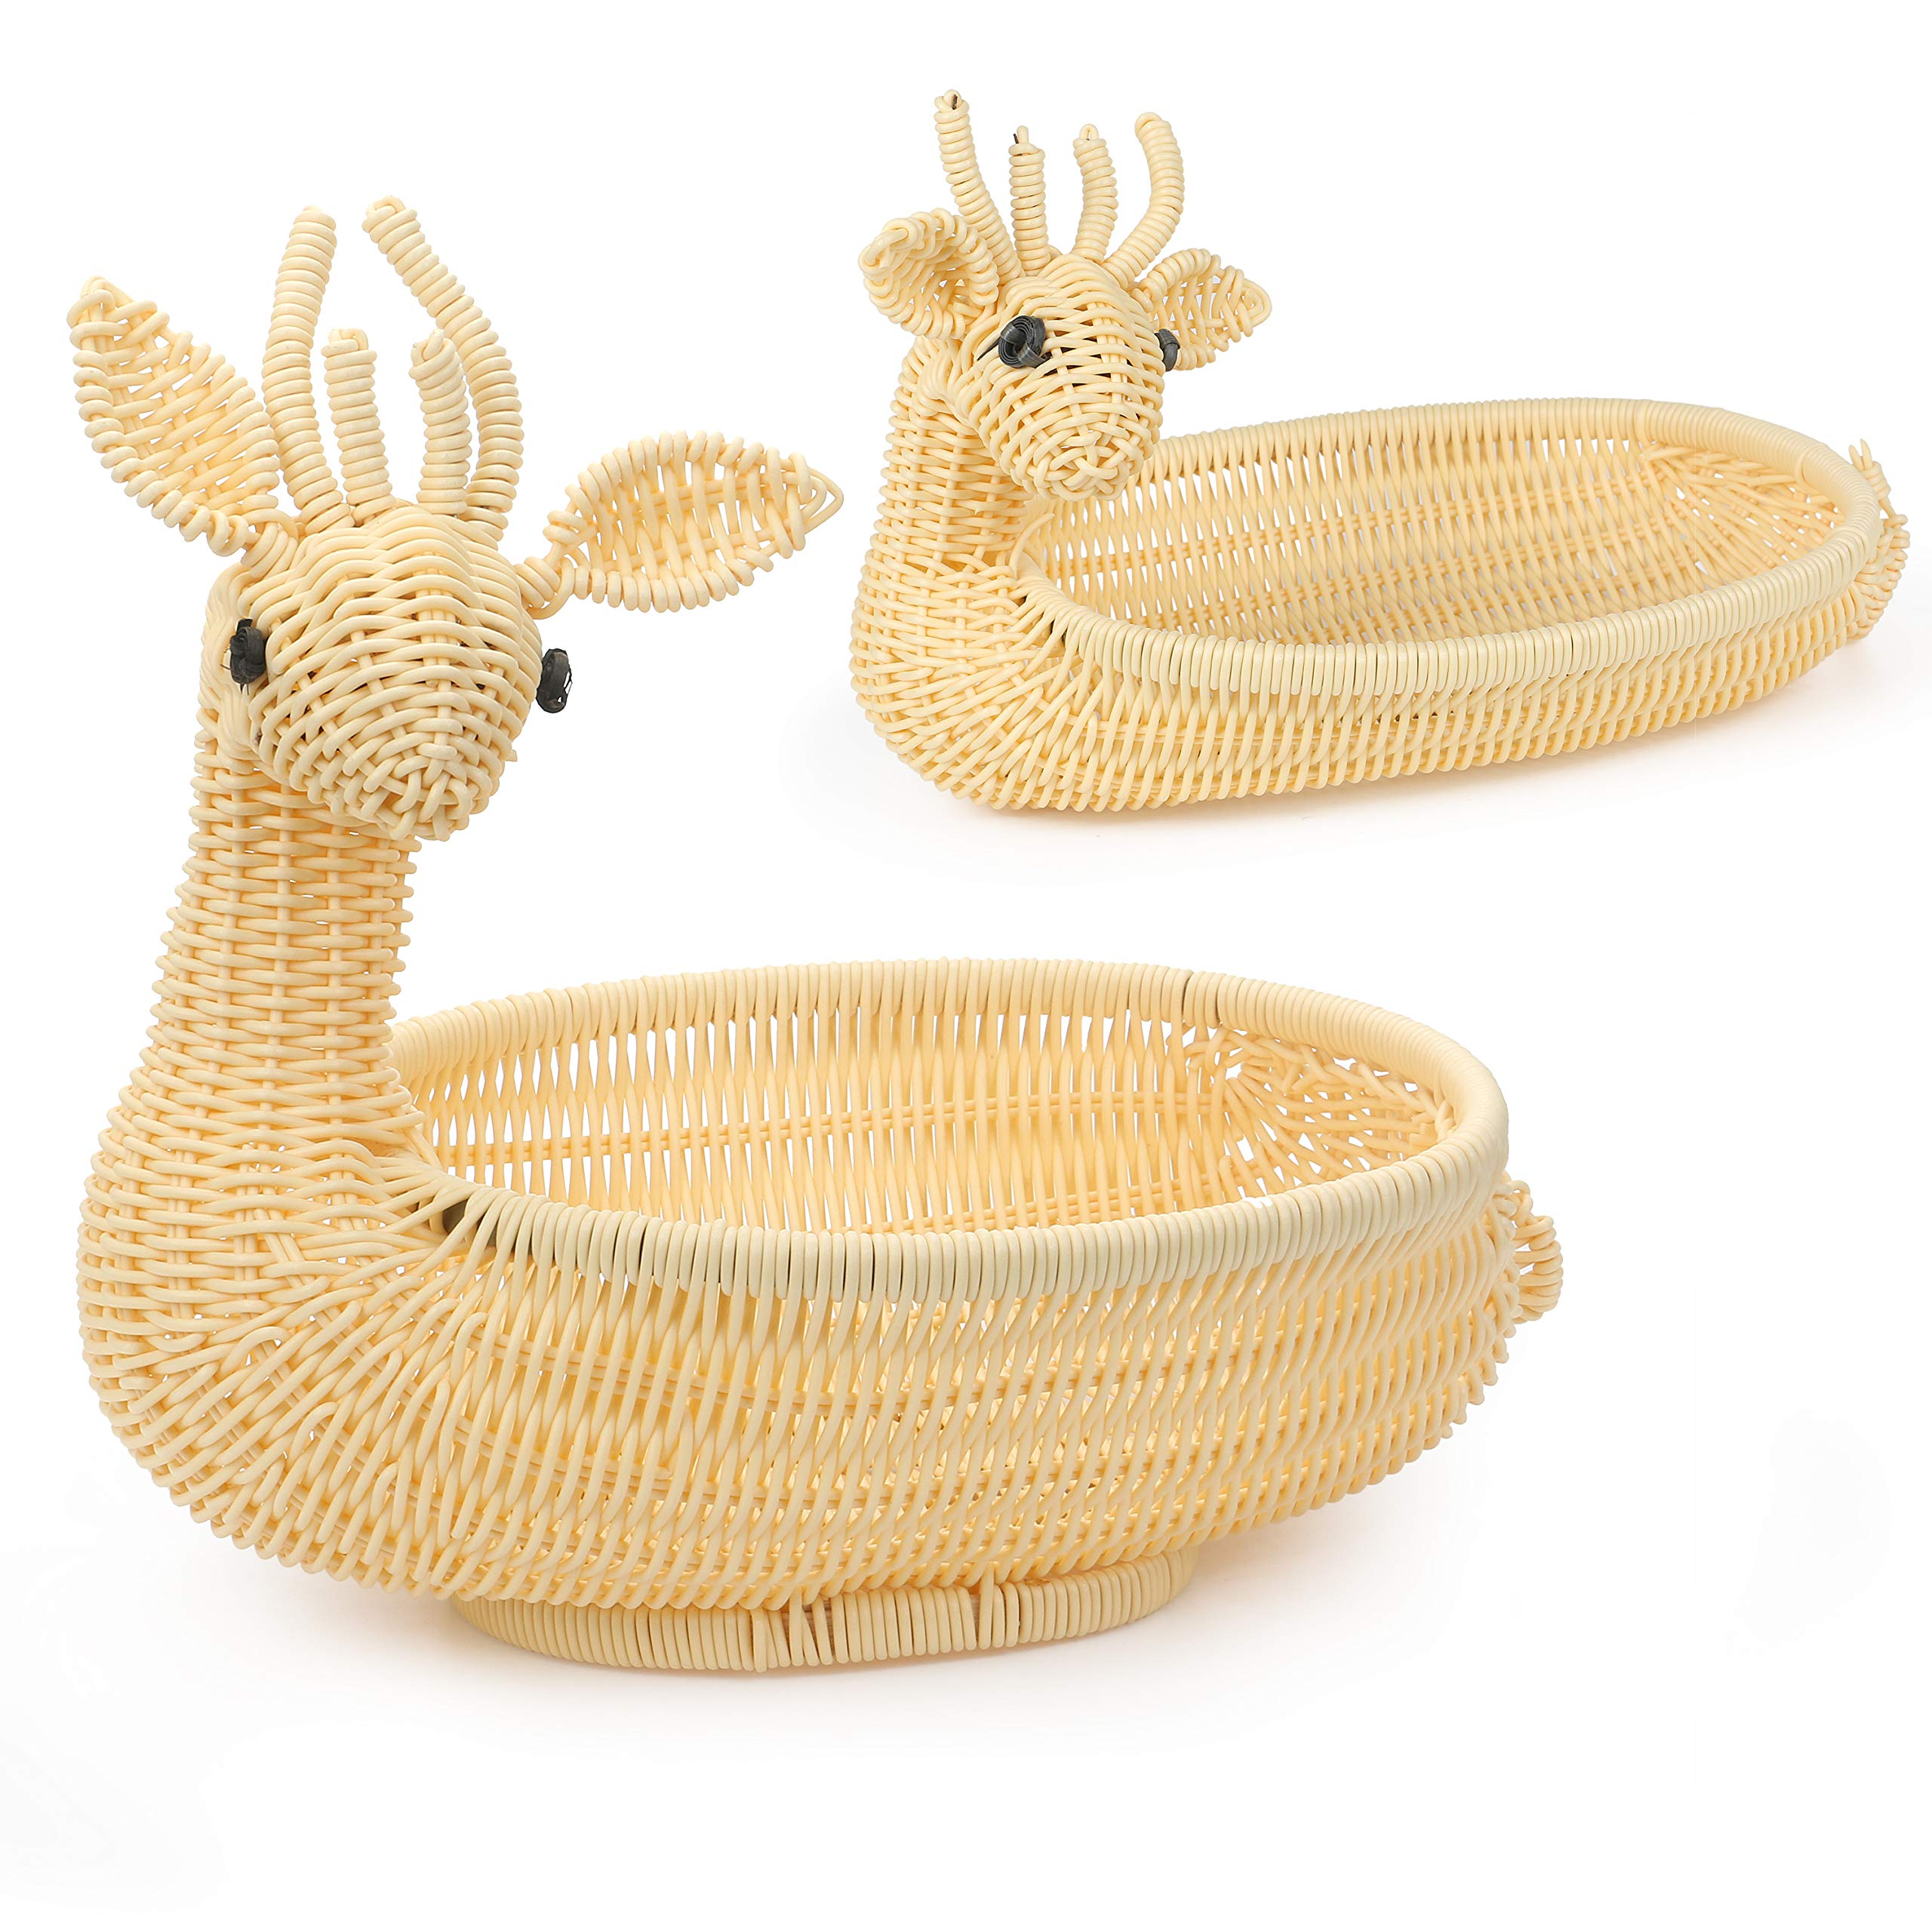 WesCastle Fruit Basket,Decorative Storage Basket, Food-grade Material Handmade Braiding, Set of 2 Pieces(Cheese color)